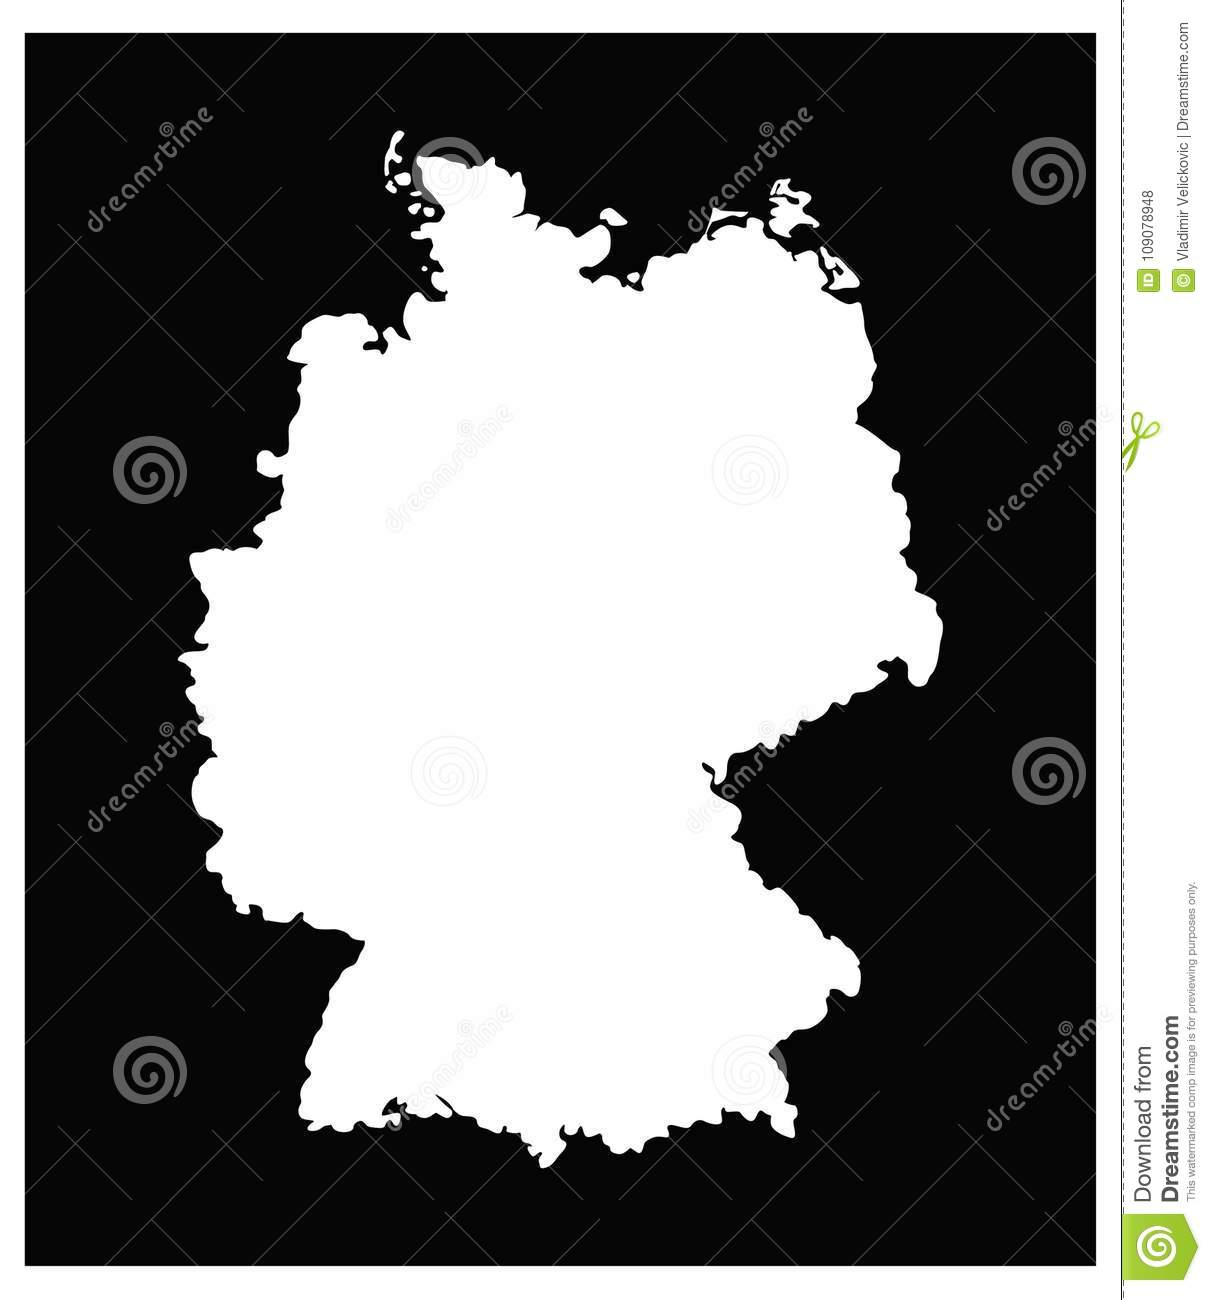 Central Germany Map.Germany Map Country In Central Western Europe Stock Vector